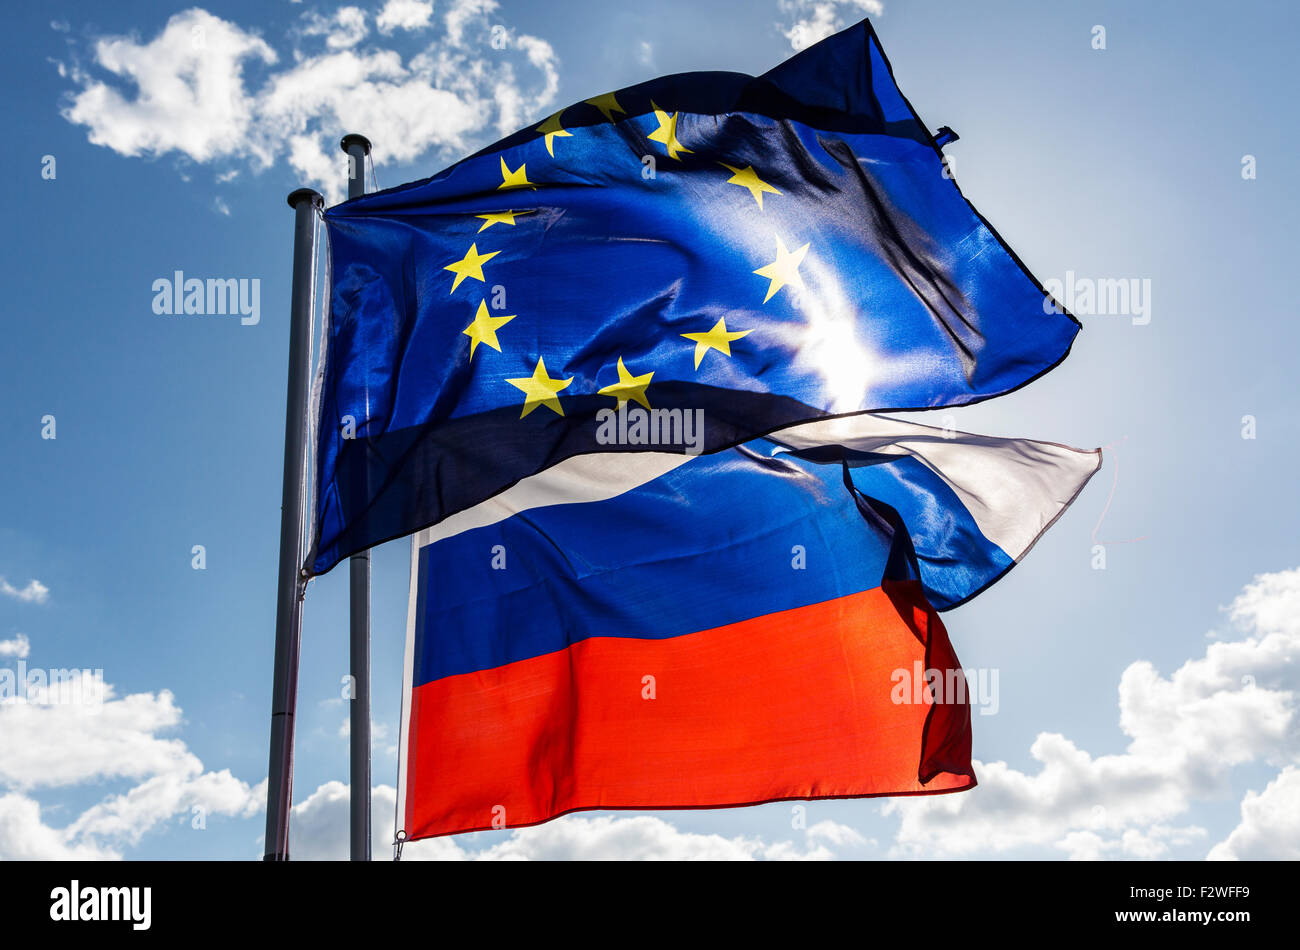 18.04.2015, Berlin, Berlin, Germany - European flag and flag of the Russian Federation waving in the wind. - Stock Image